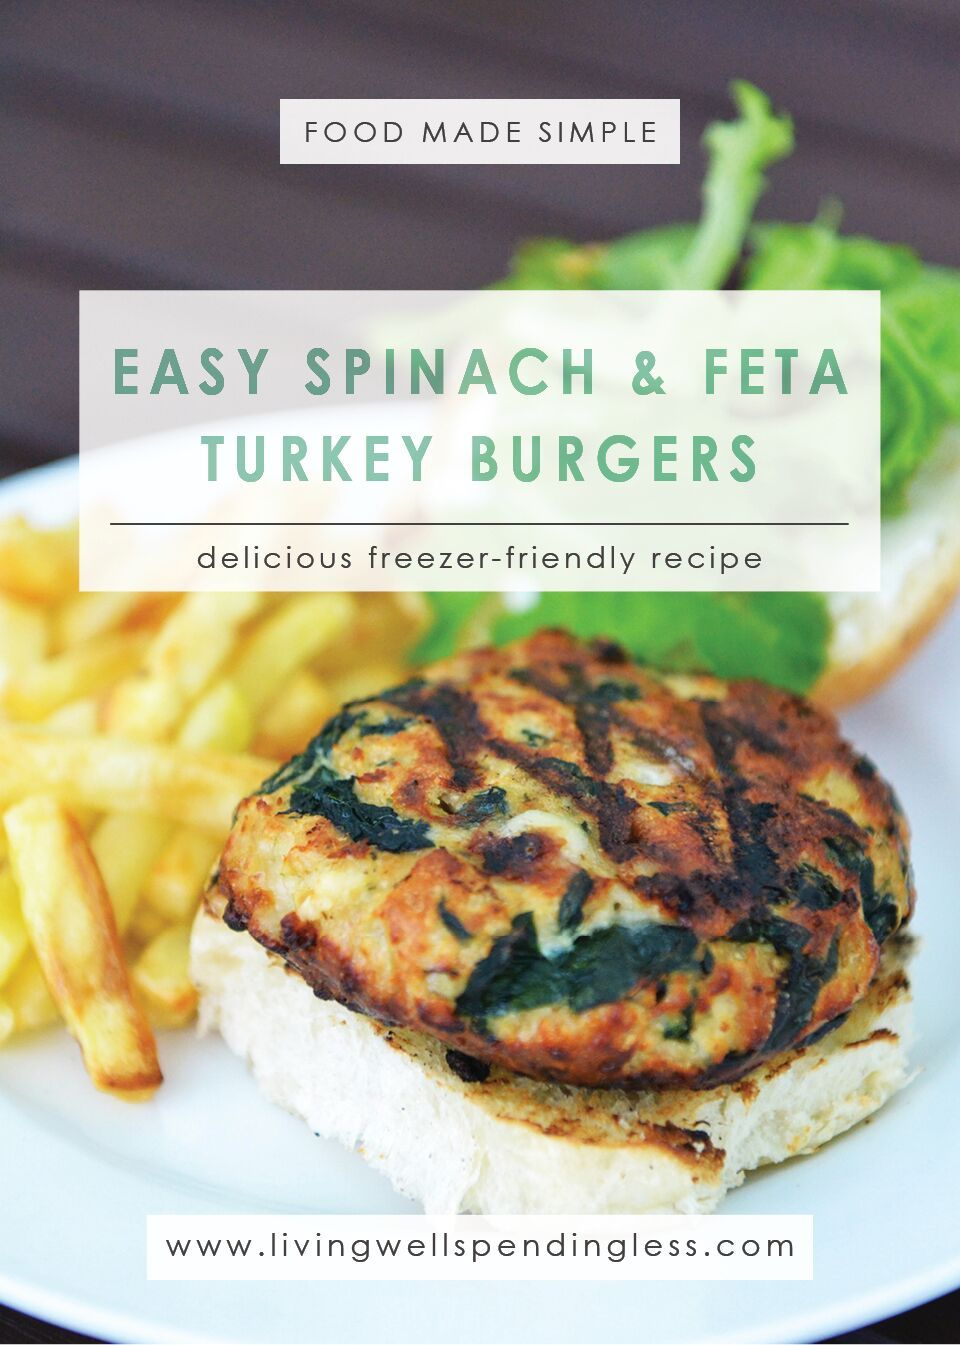 Easy Spinach & Feta Turkey Burgers| Quick Spinach and Feta Turkey Burgers Recipe | Spinach Feta Turkey Burgers | Turkey Burgers